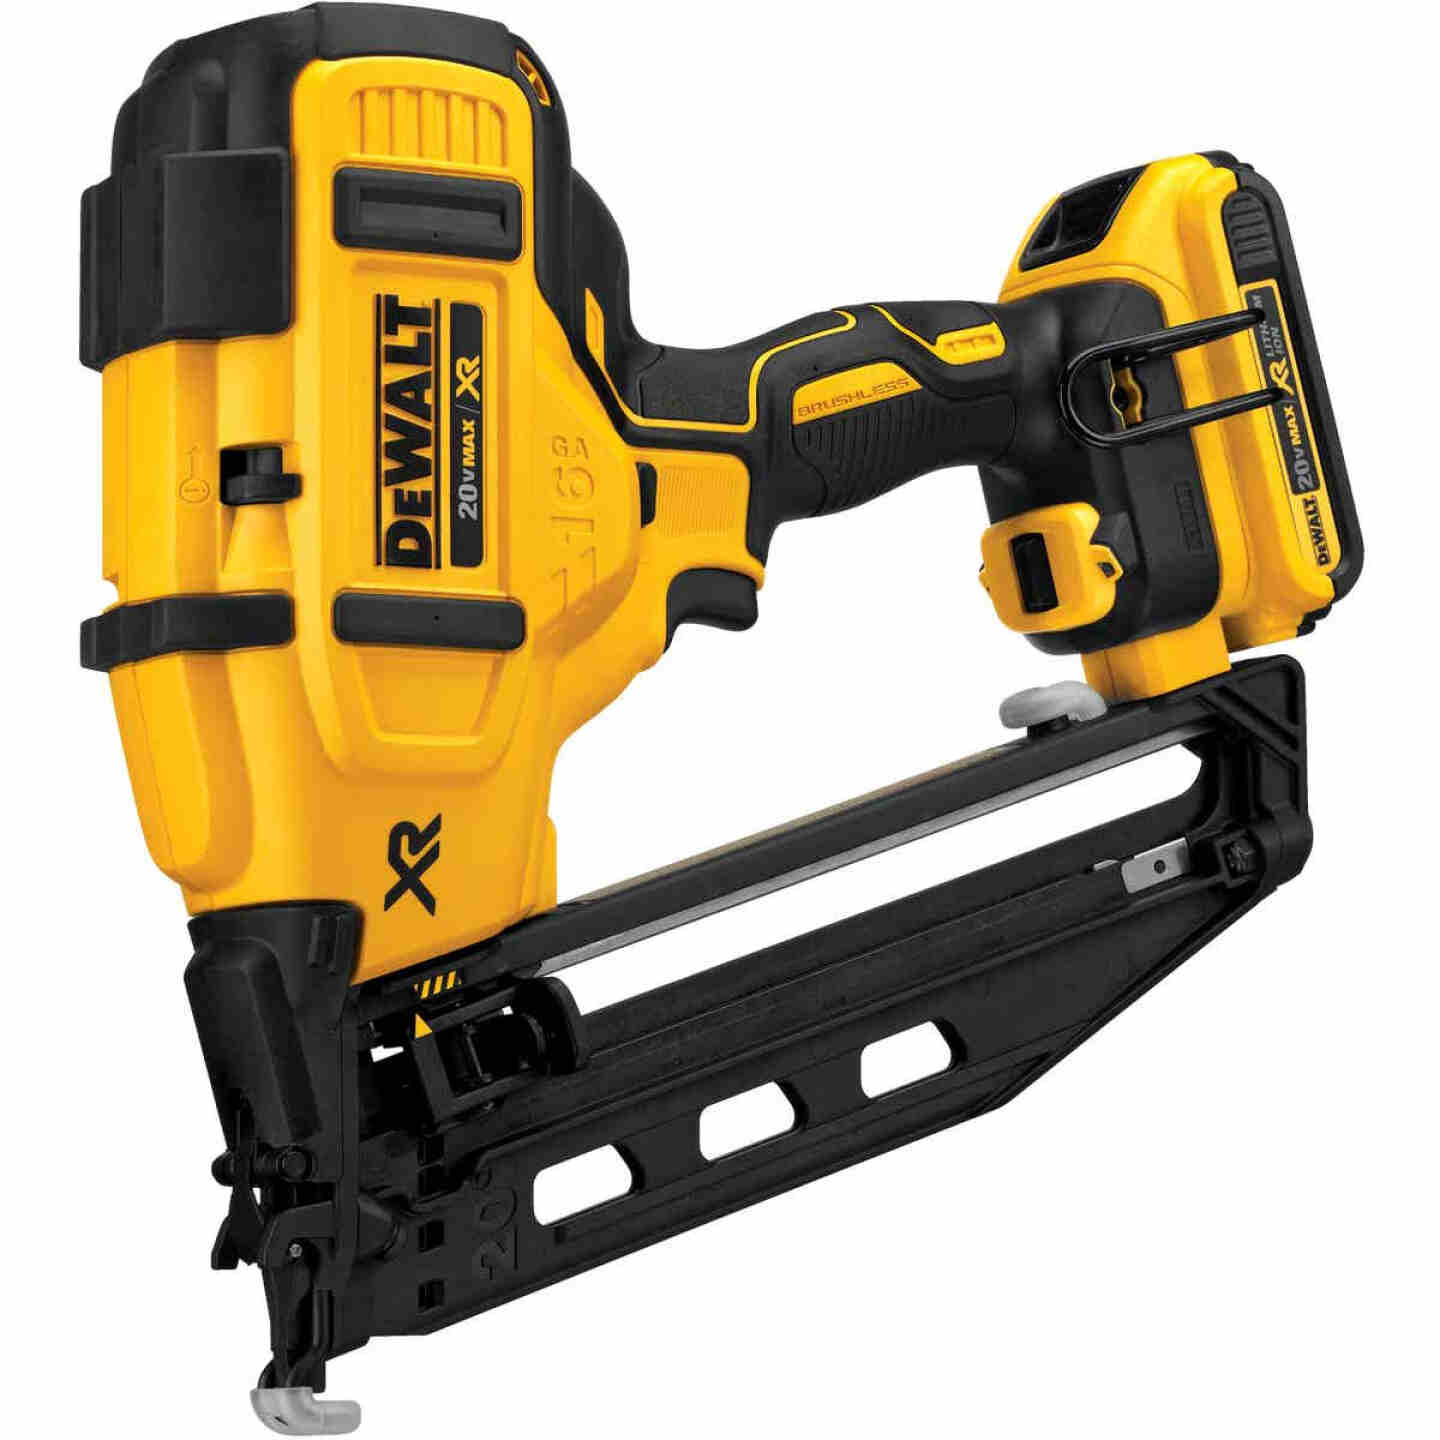 DeWalt 20 Volt MAX XR Lithium-Ion 16-Gauge 2-1/2 In. Angled Cordless Finish Nailer Kit Image 6